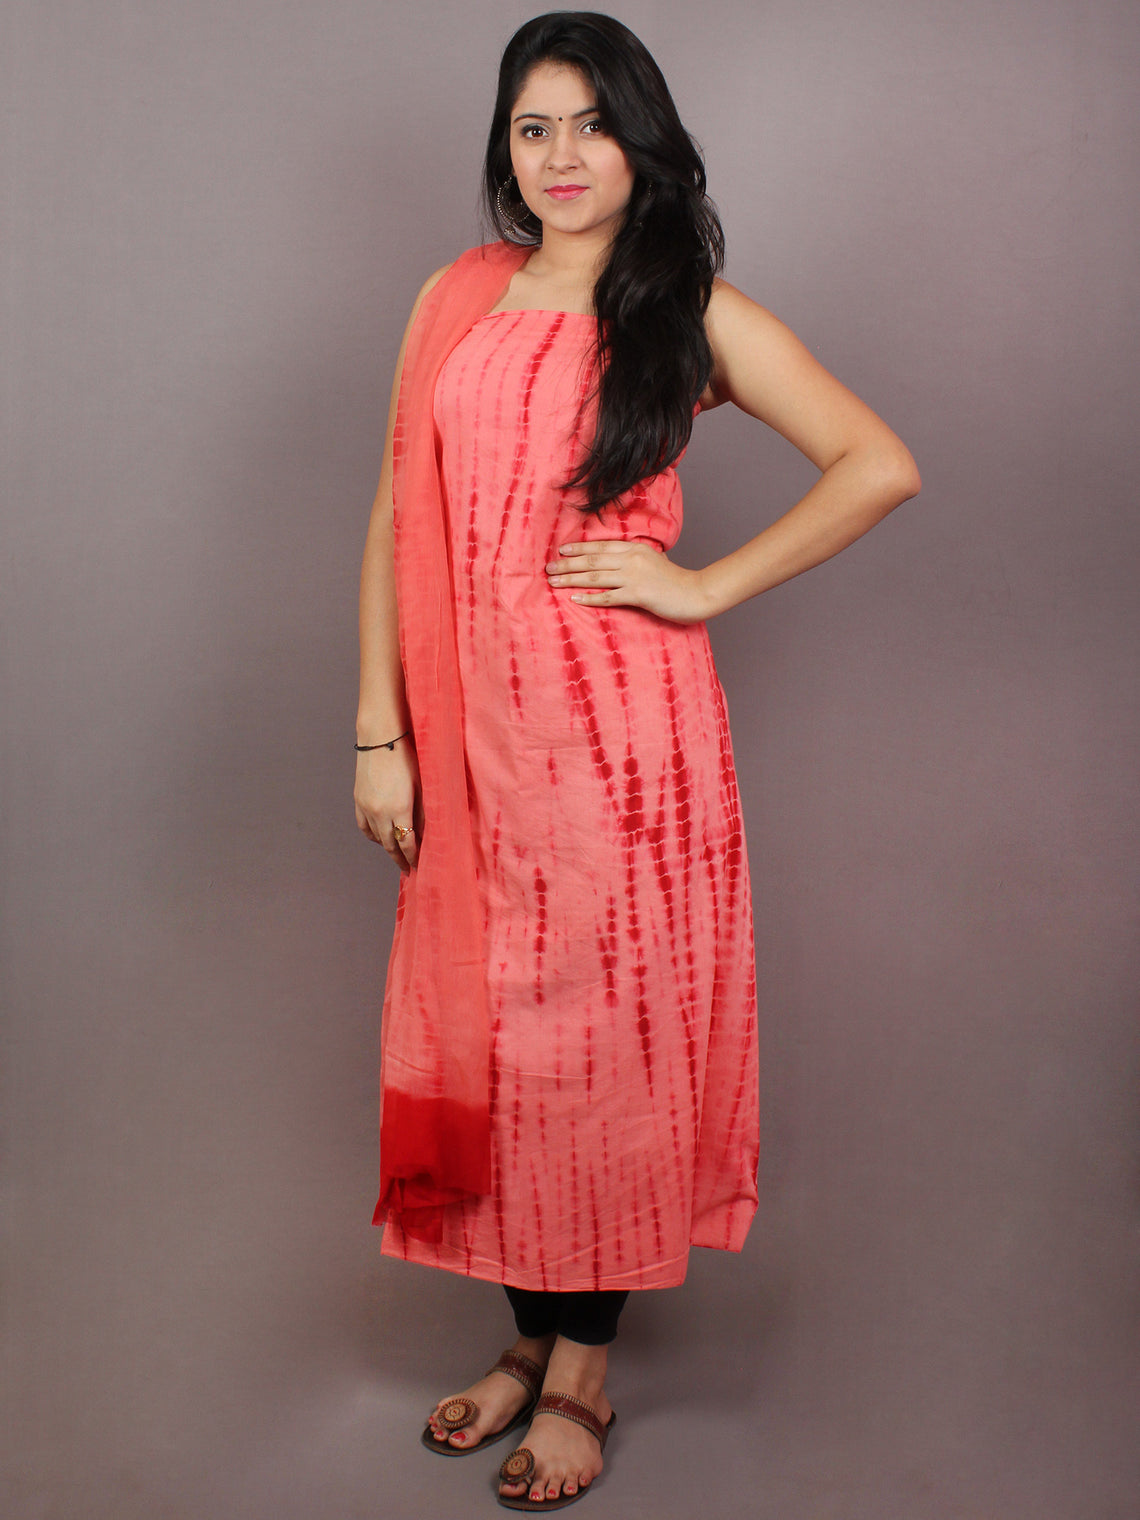 Red Maroon Hand Shibori Cotton Suit-Salwar Fabric With Chiffon Dupatta - S1628094